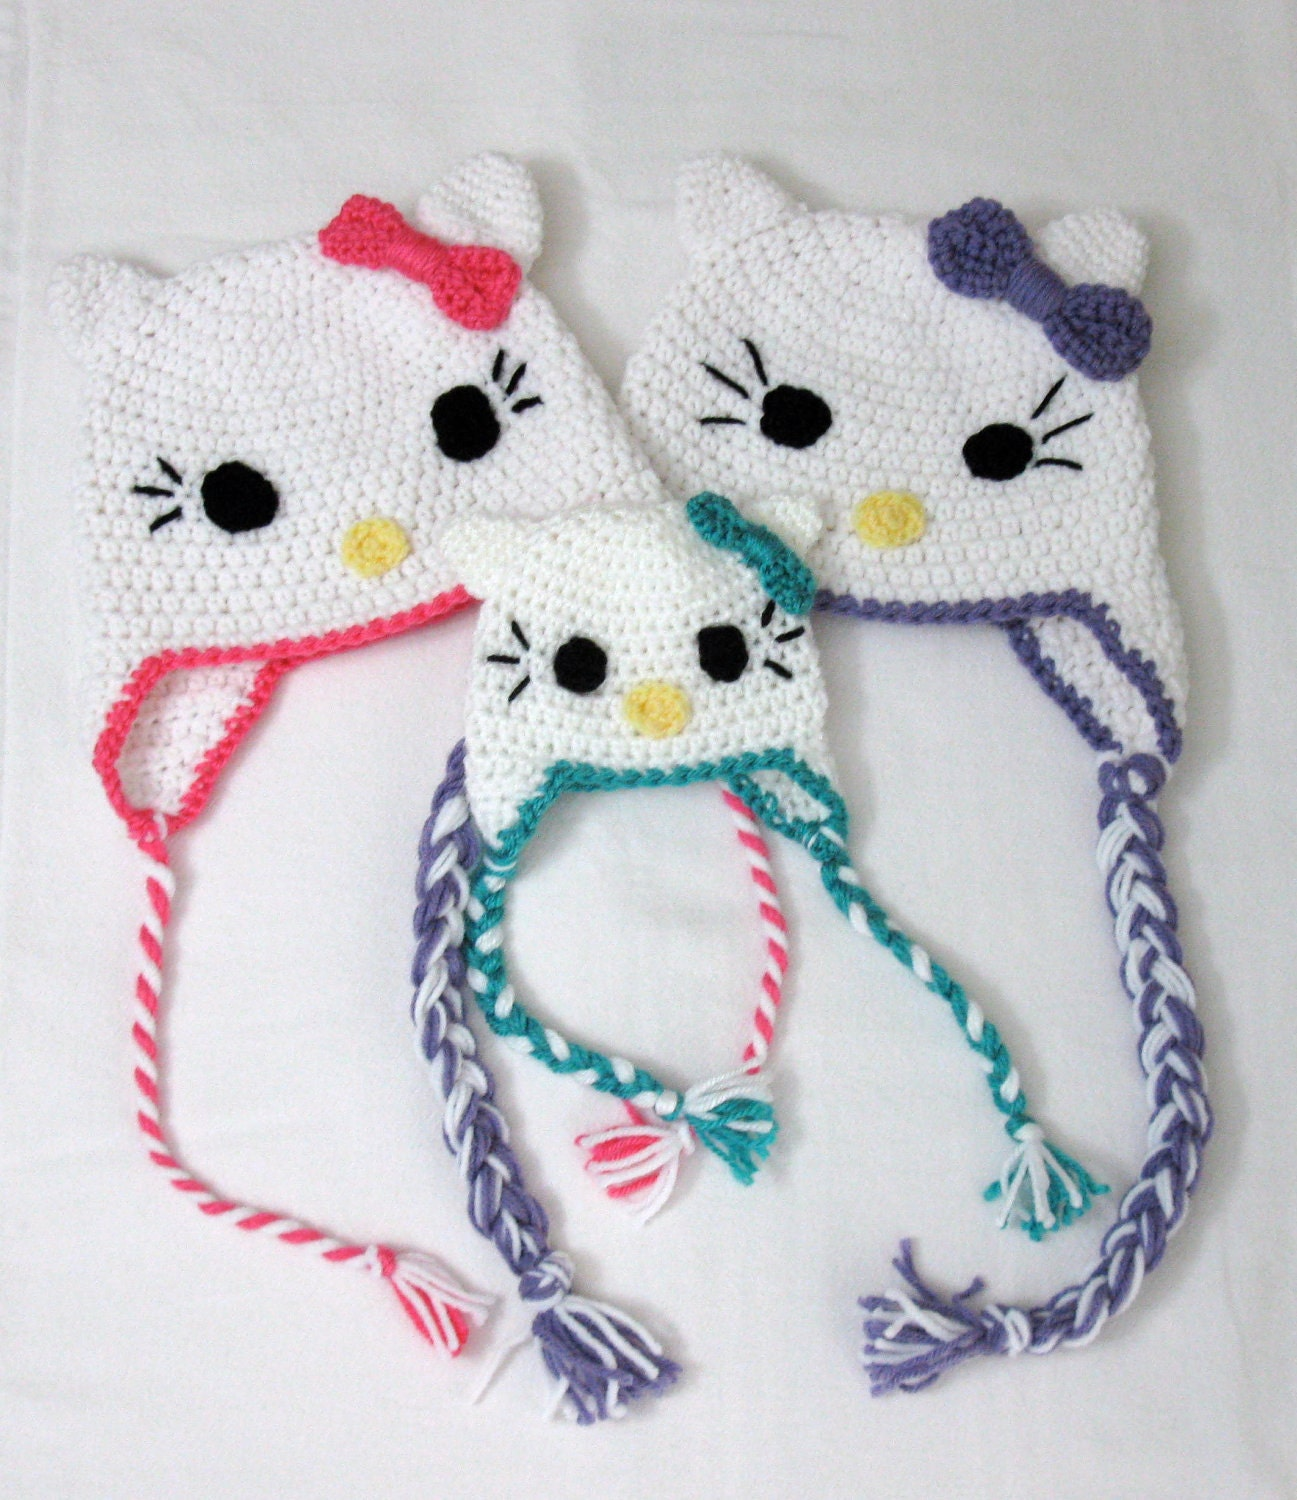 Crochet Kitty Hat Pattern : HELLO KITTY CROCHET PATTERN Crochet For Beginners